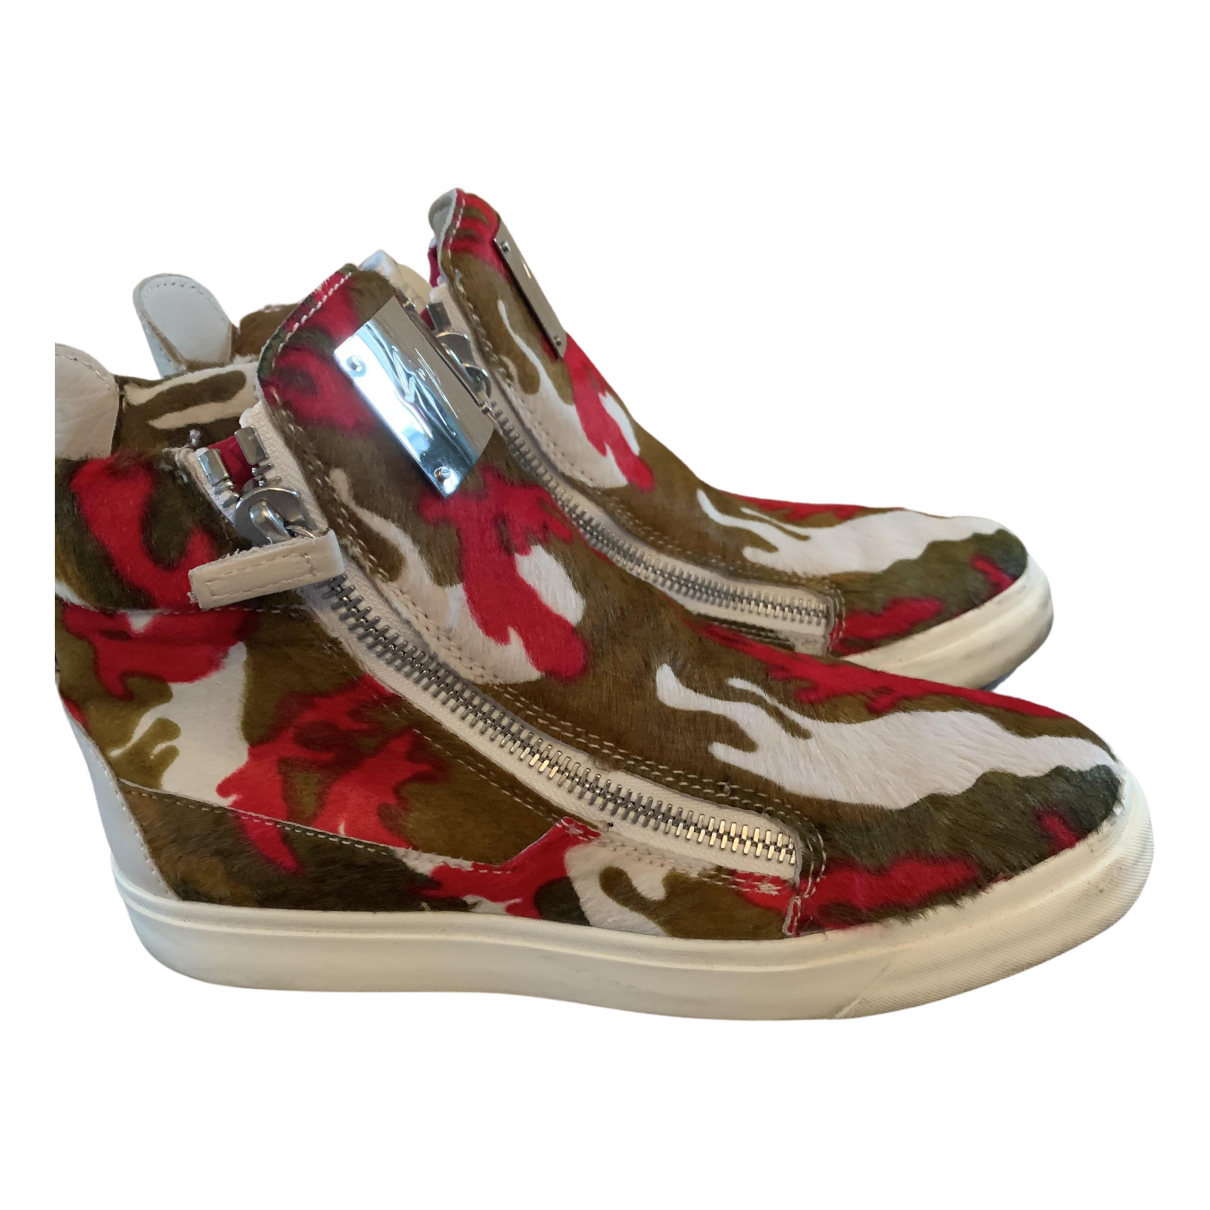 Giuseppe Zanotti N Multicolour Pony-style calfskin Trainers for Women 7.5 UK